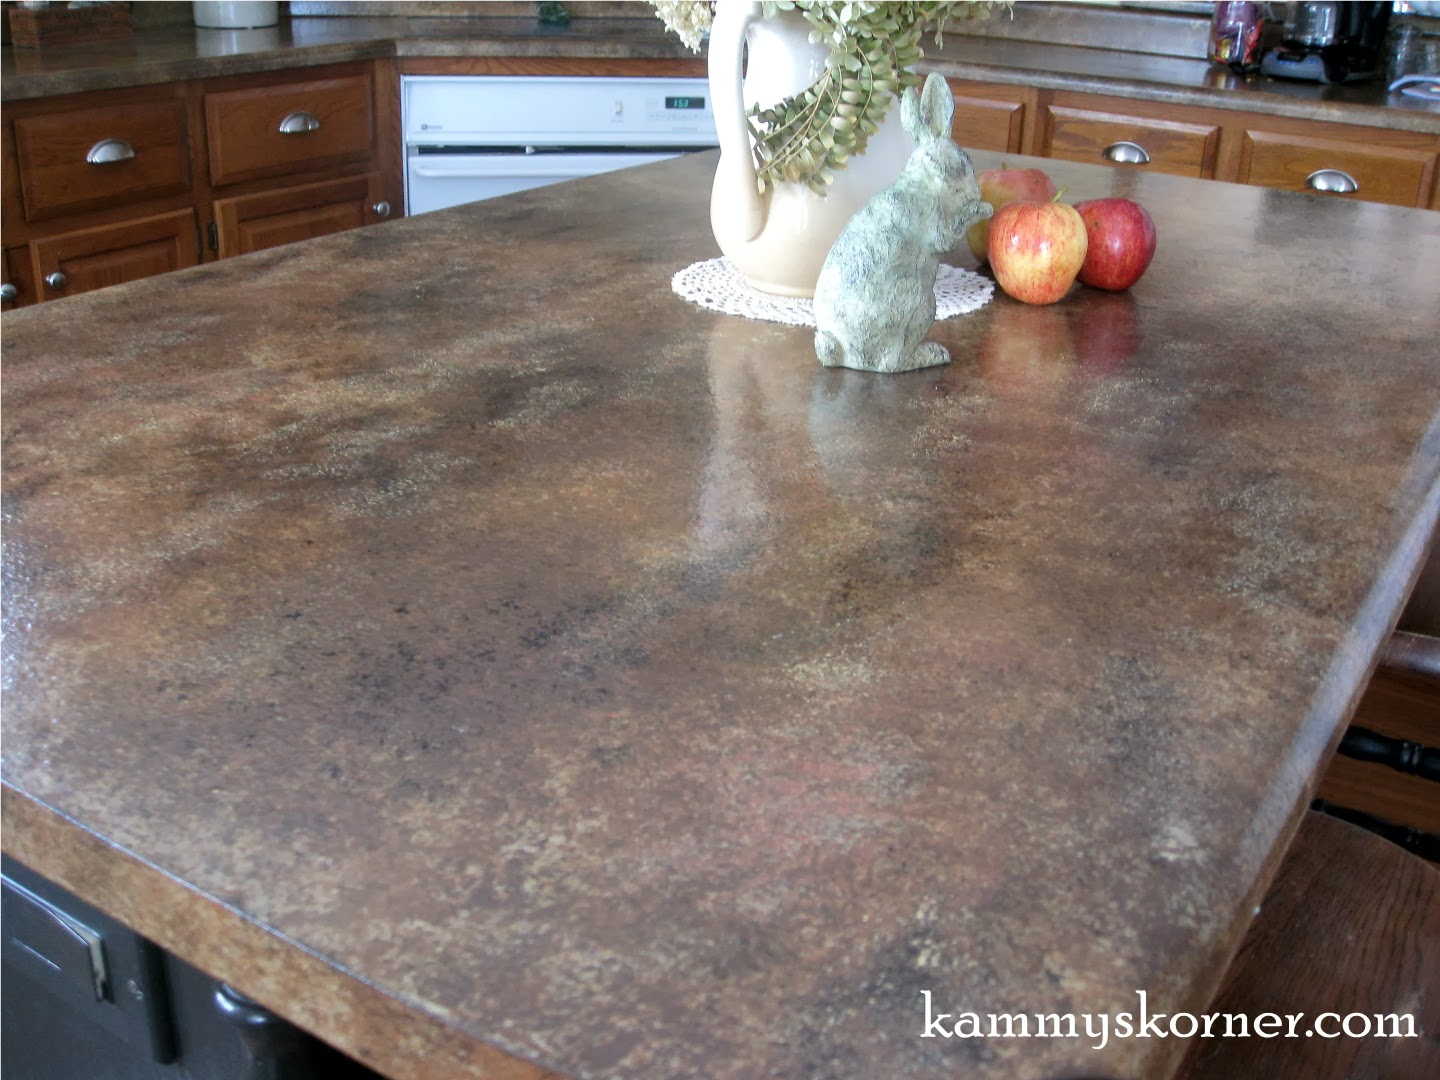 Black Faux Granite Countertops Kammy 39s Korner Painted Faux Granite Counter Tops With